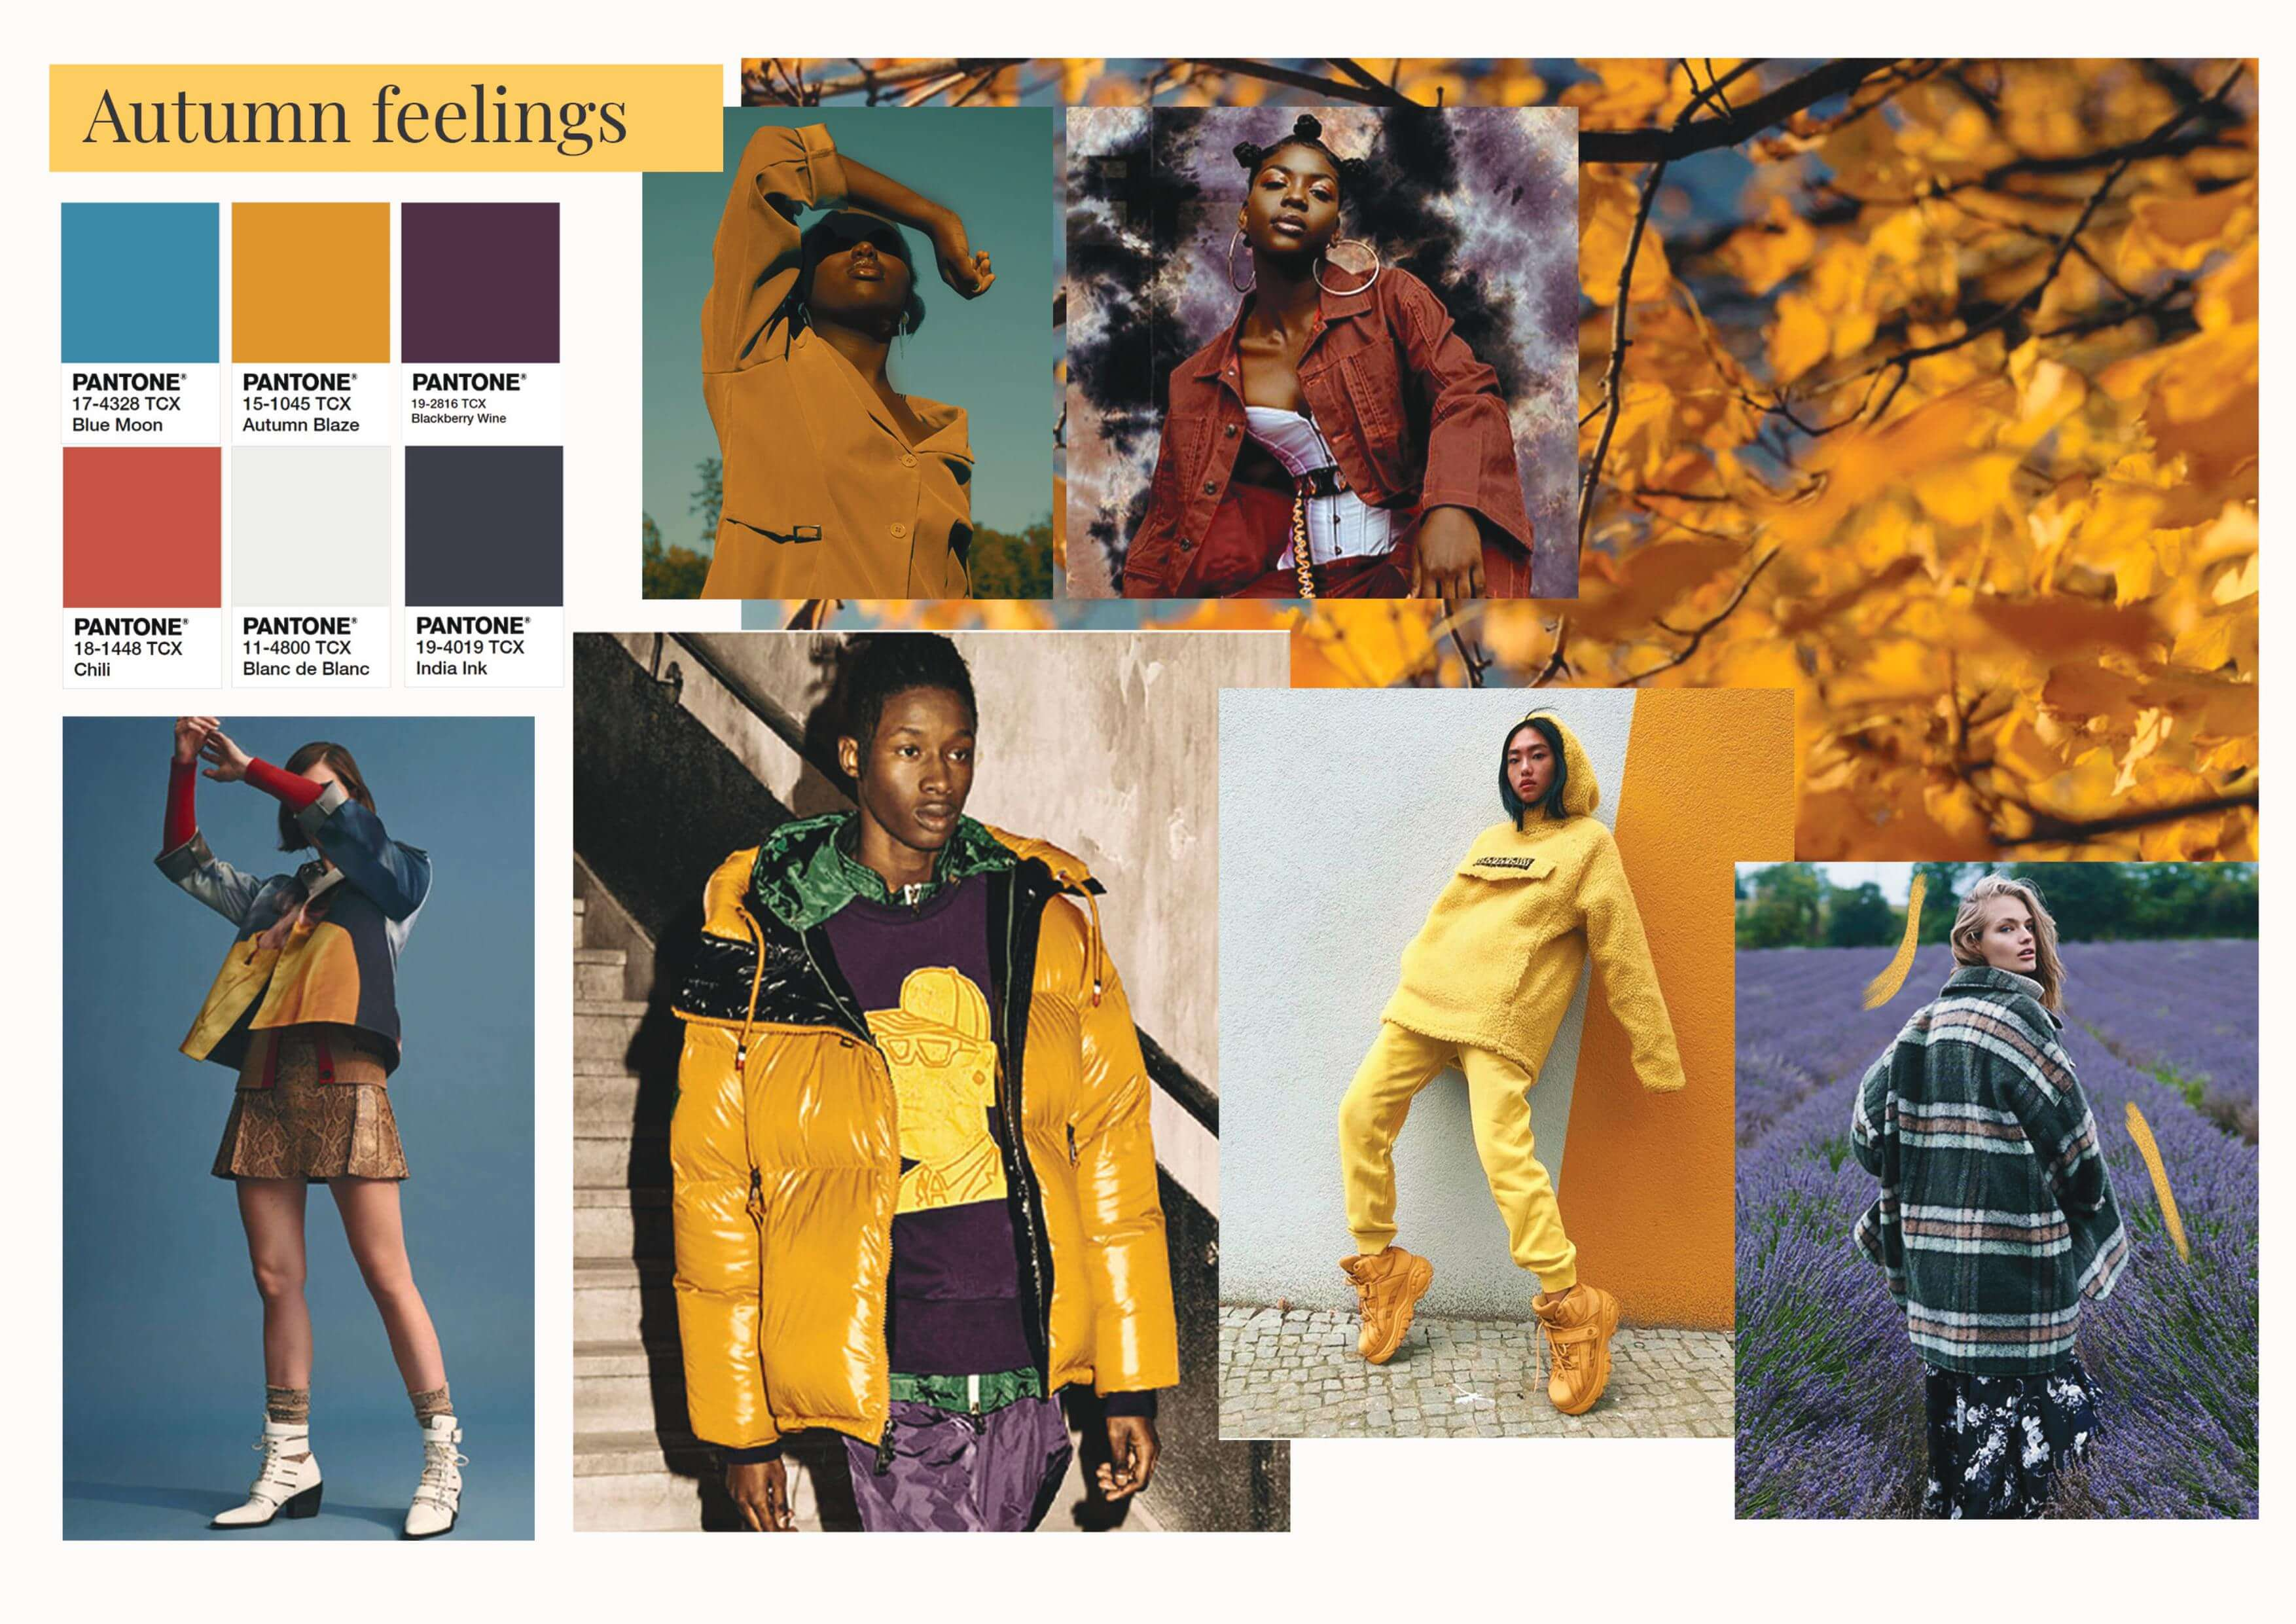 color trends for aw 2020-autumn feelings